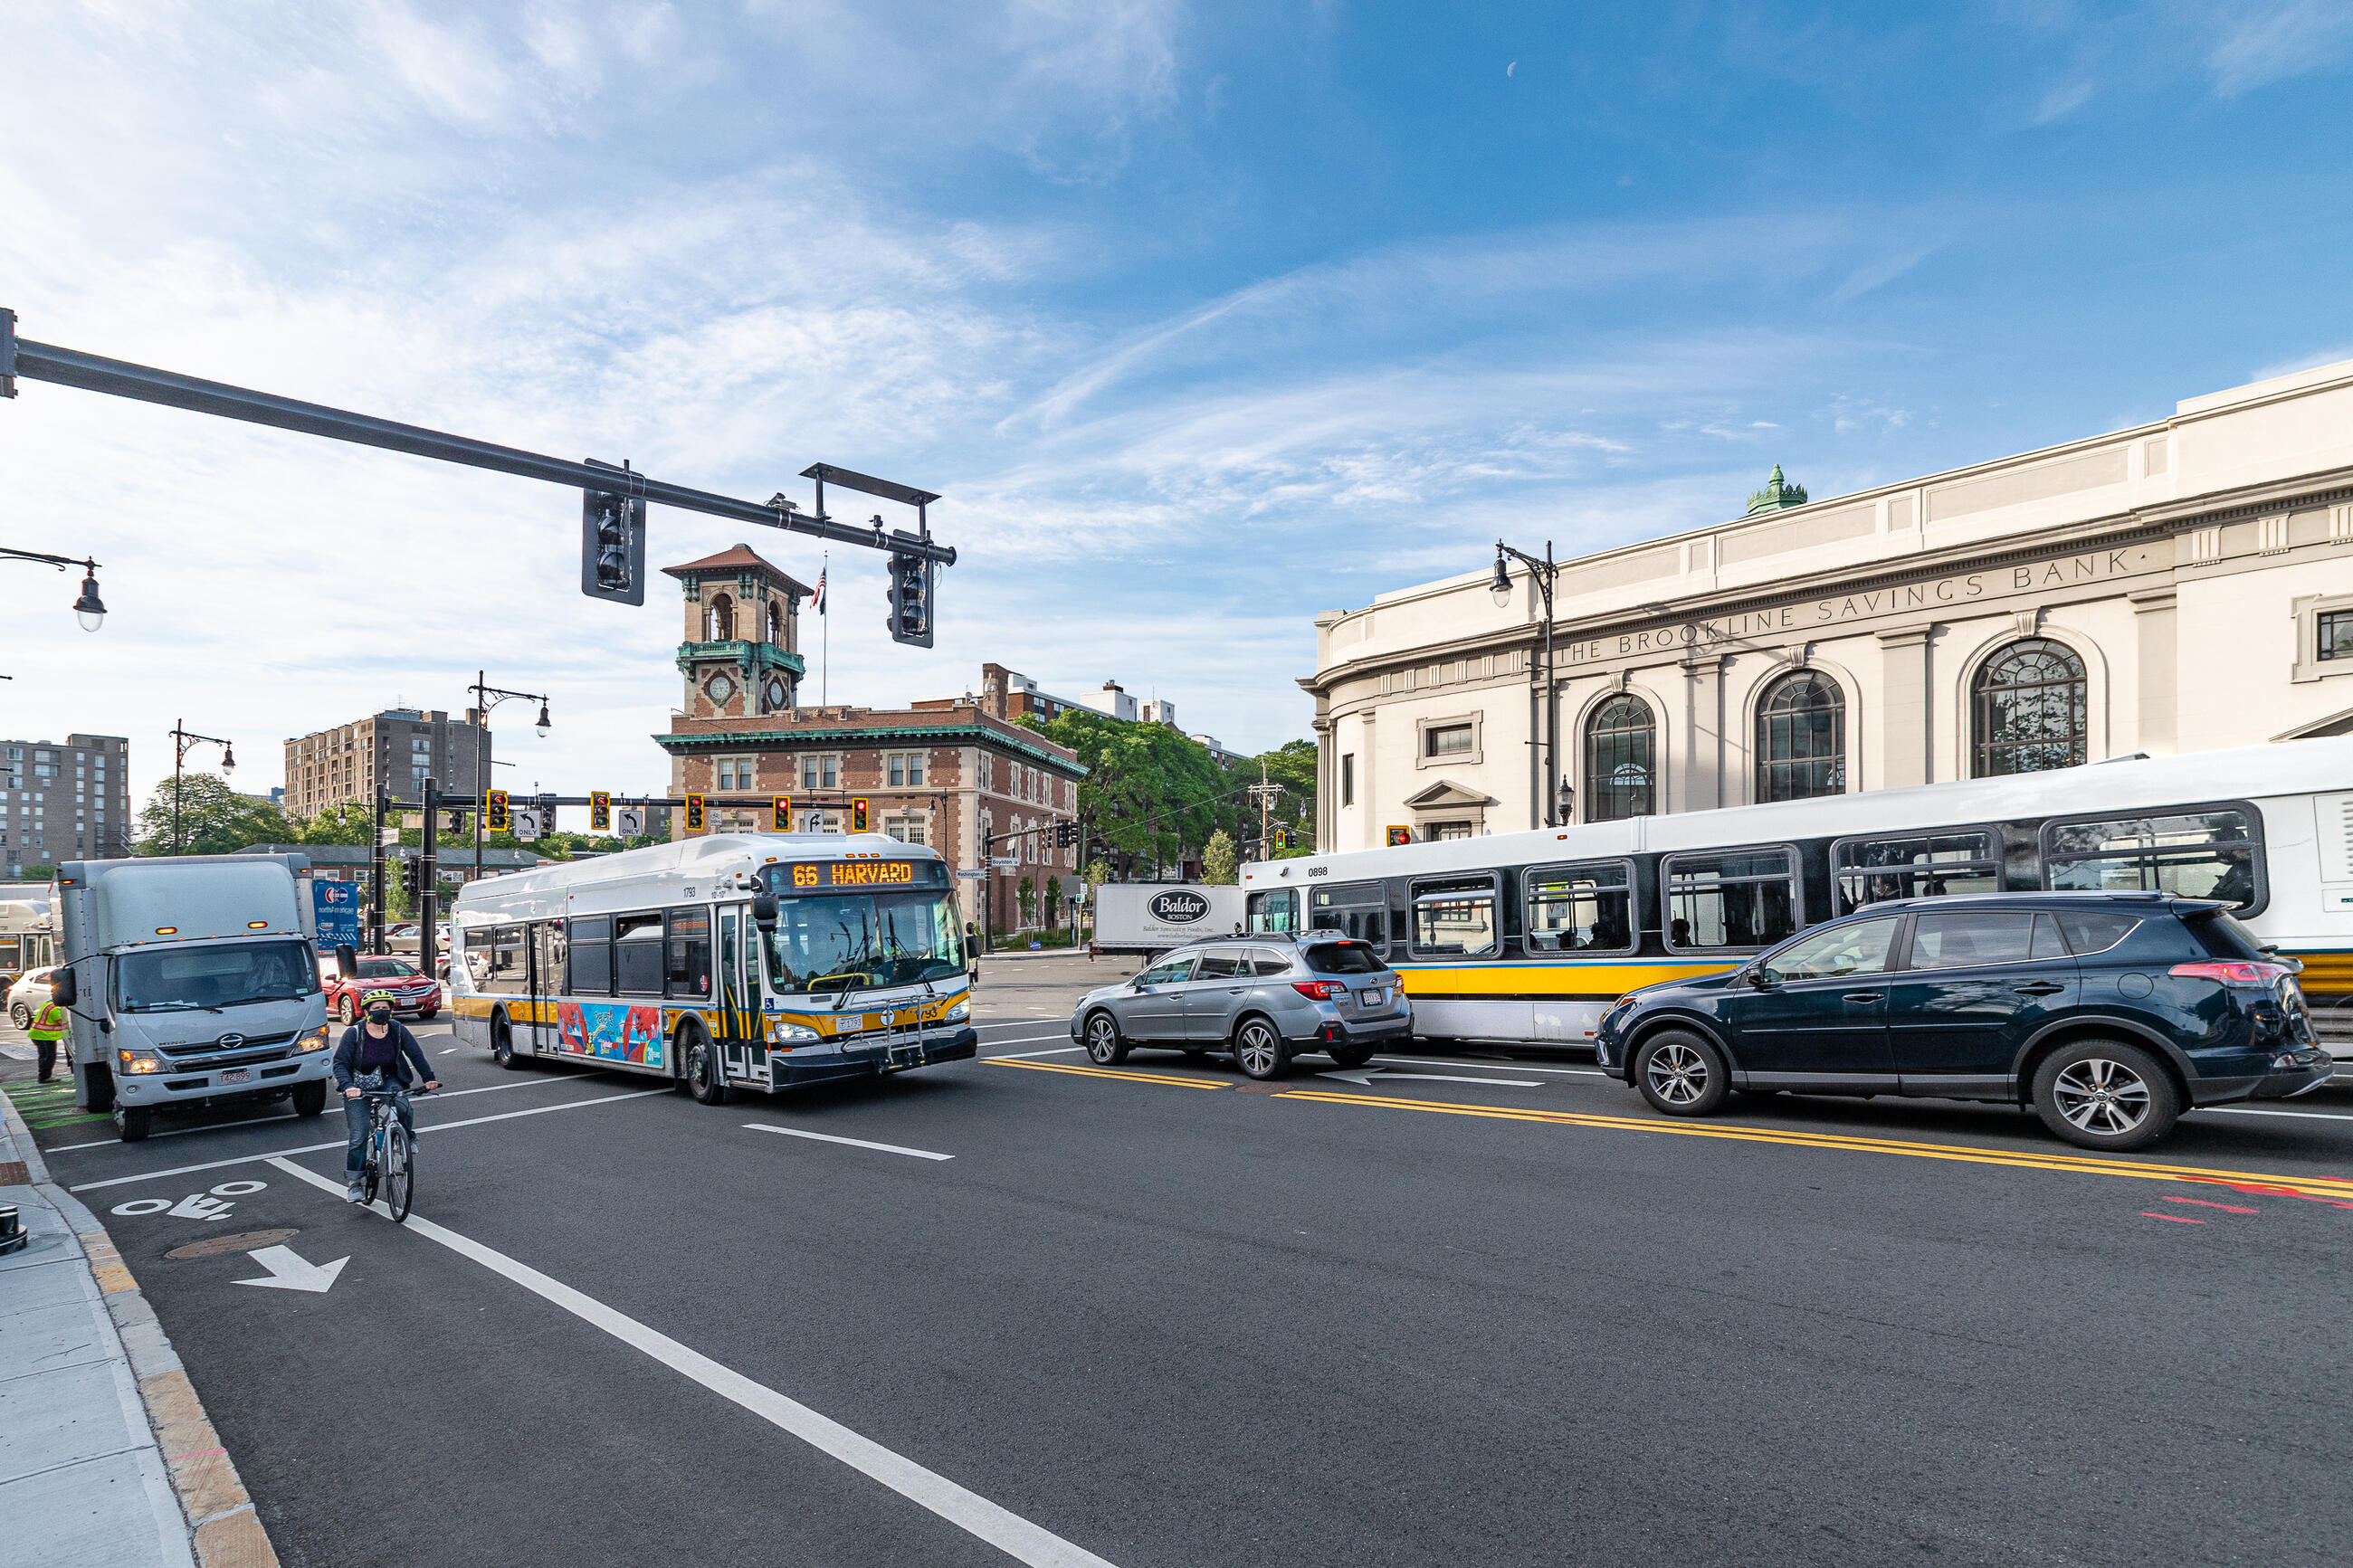 Bus Route 66 has been the highest ridership route in recent weeks. Improvements in the Gateway East project area in Brookline aim to improve reliability for Bus Routes 66, 65, 60 riders.